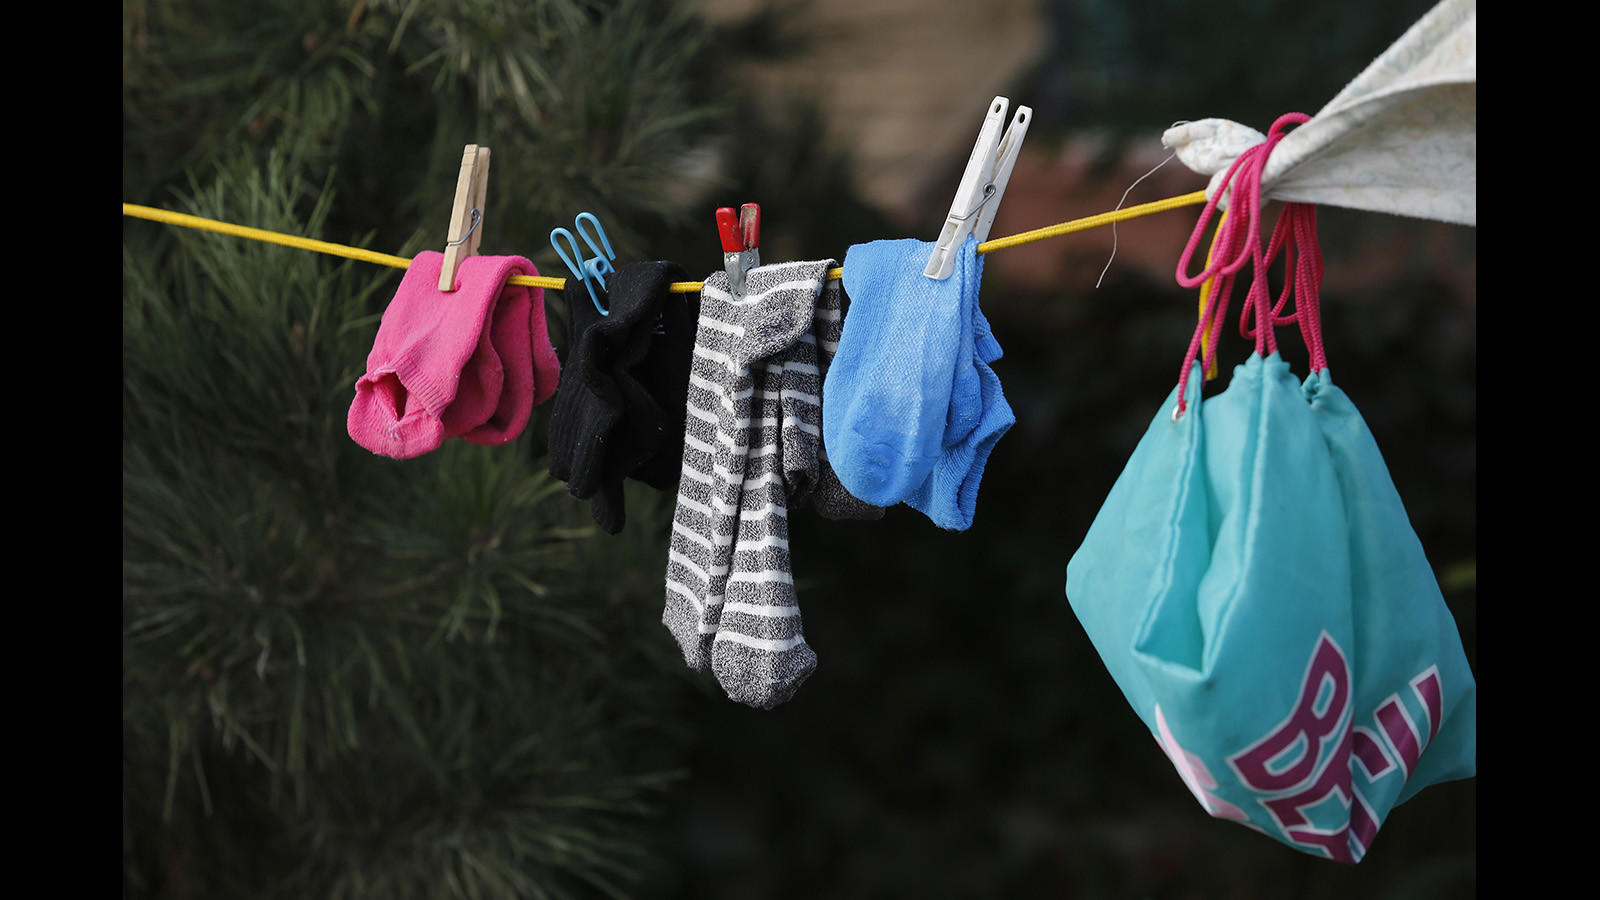 Socks are hung to dry outside Lisa Weber's camp along the Santa Ana River.